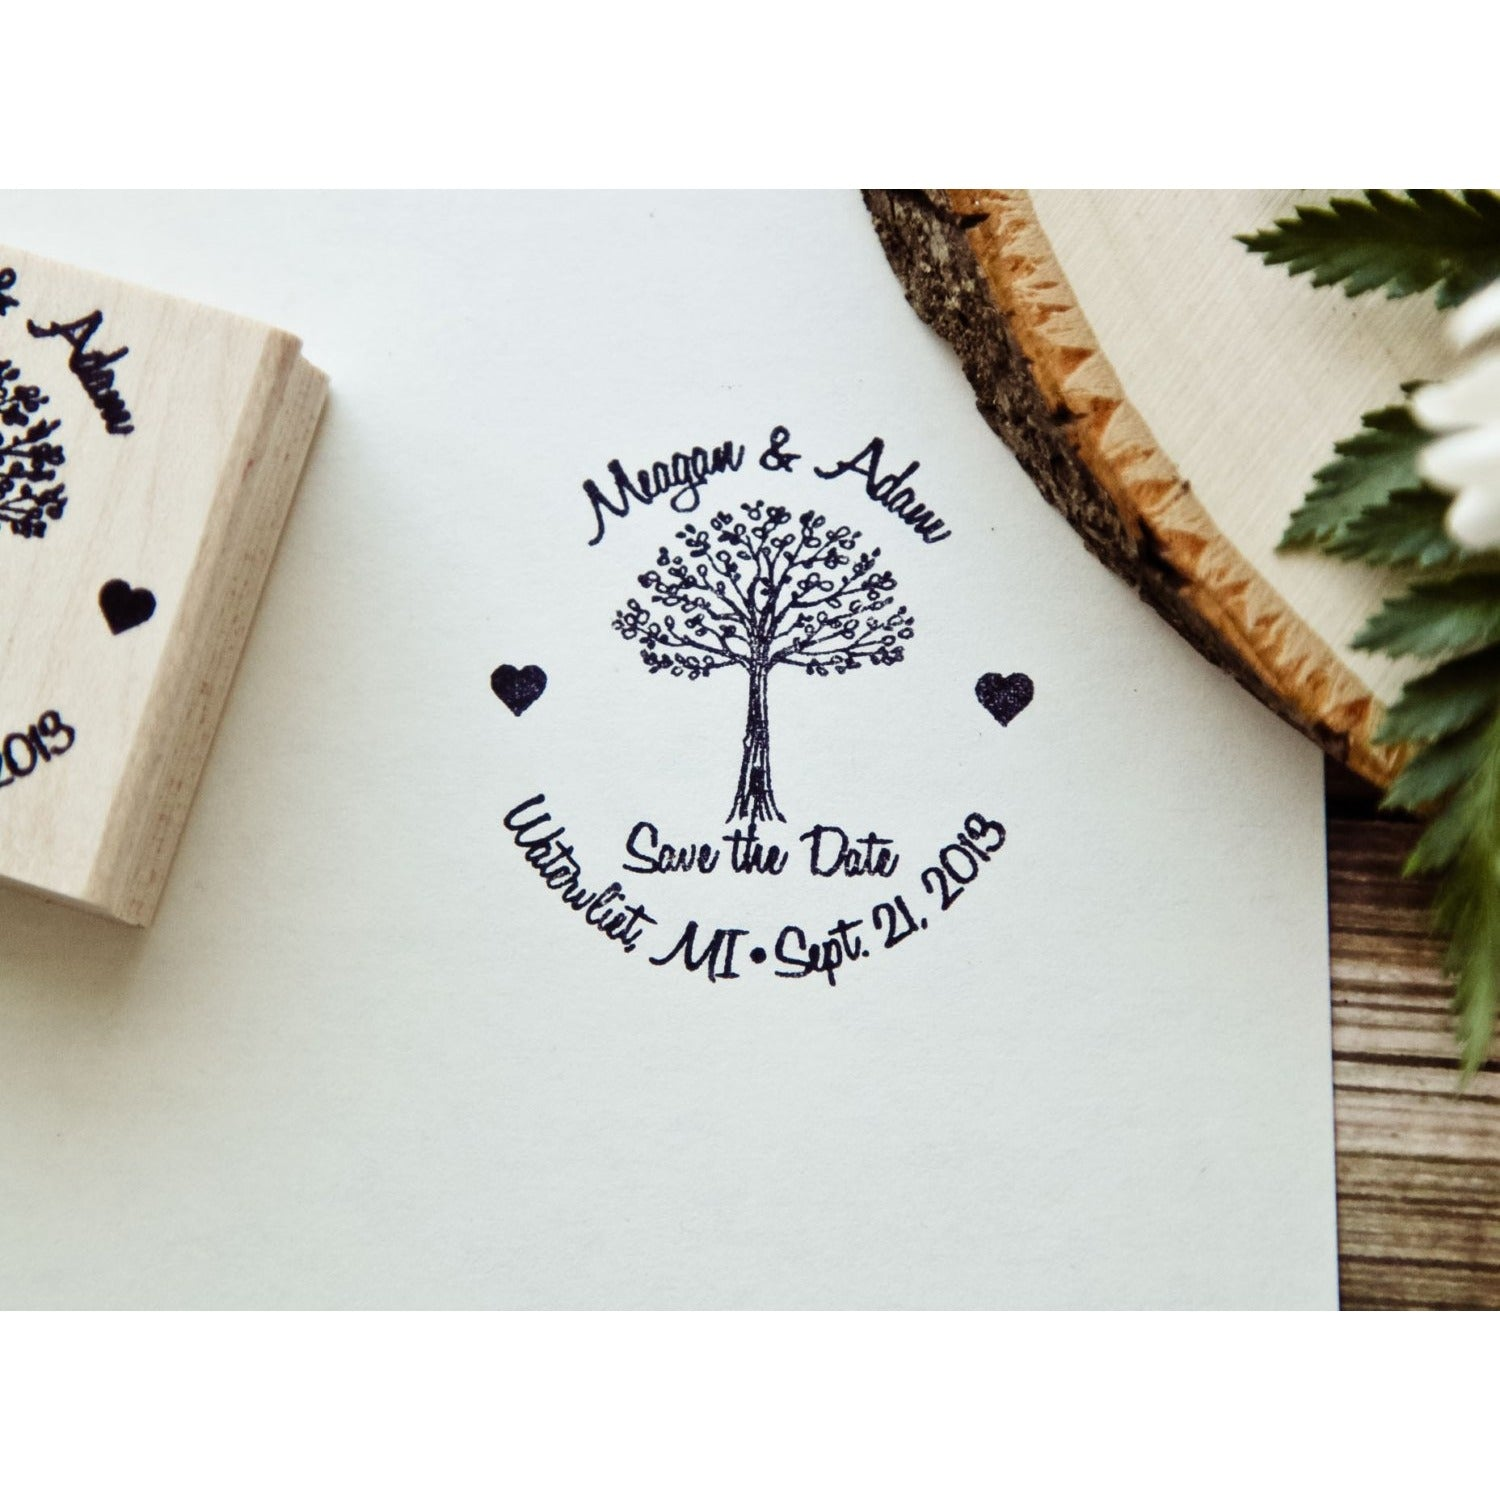 Custom Rubber Stamp, Personalized Rubber Stamp, Save The Date Tree Stamp, Custom Tree Rubber Stamp, Wedding Rubber Stamp